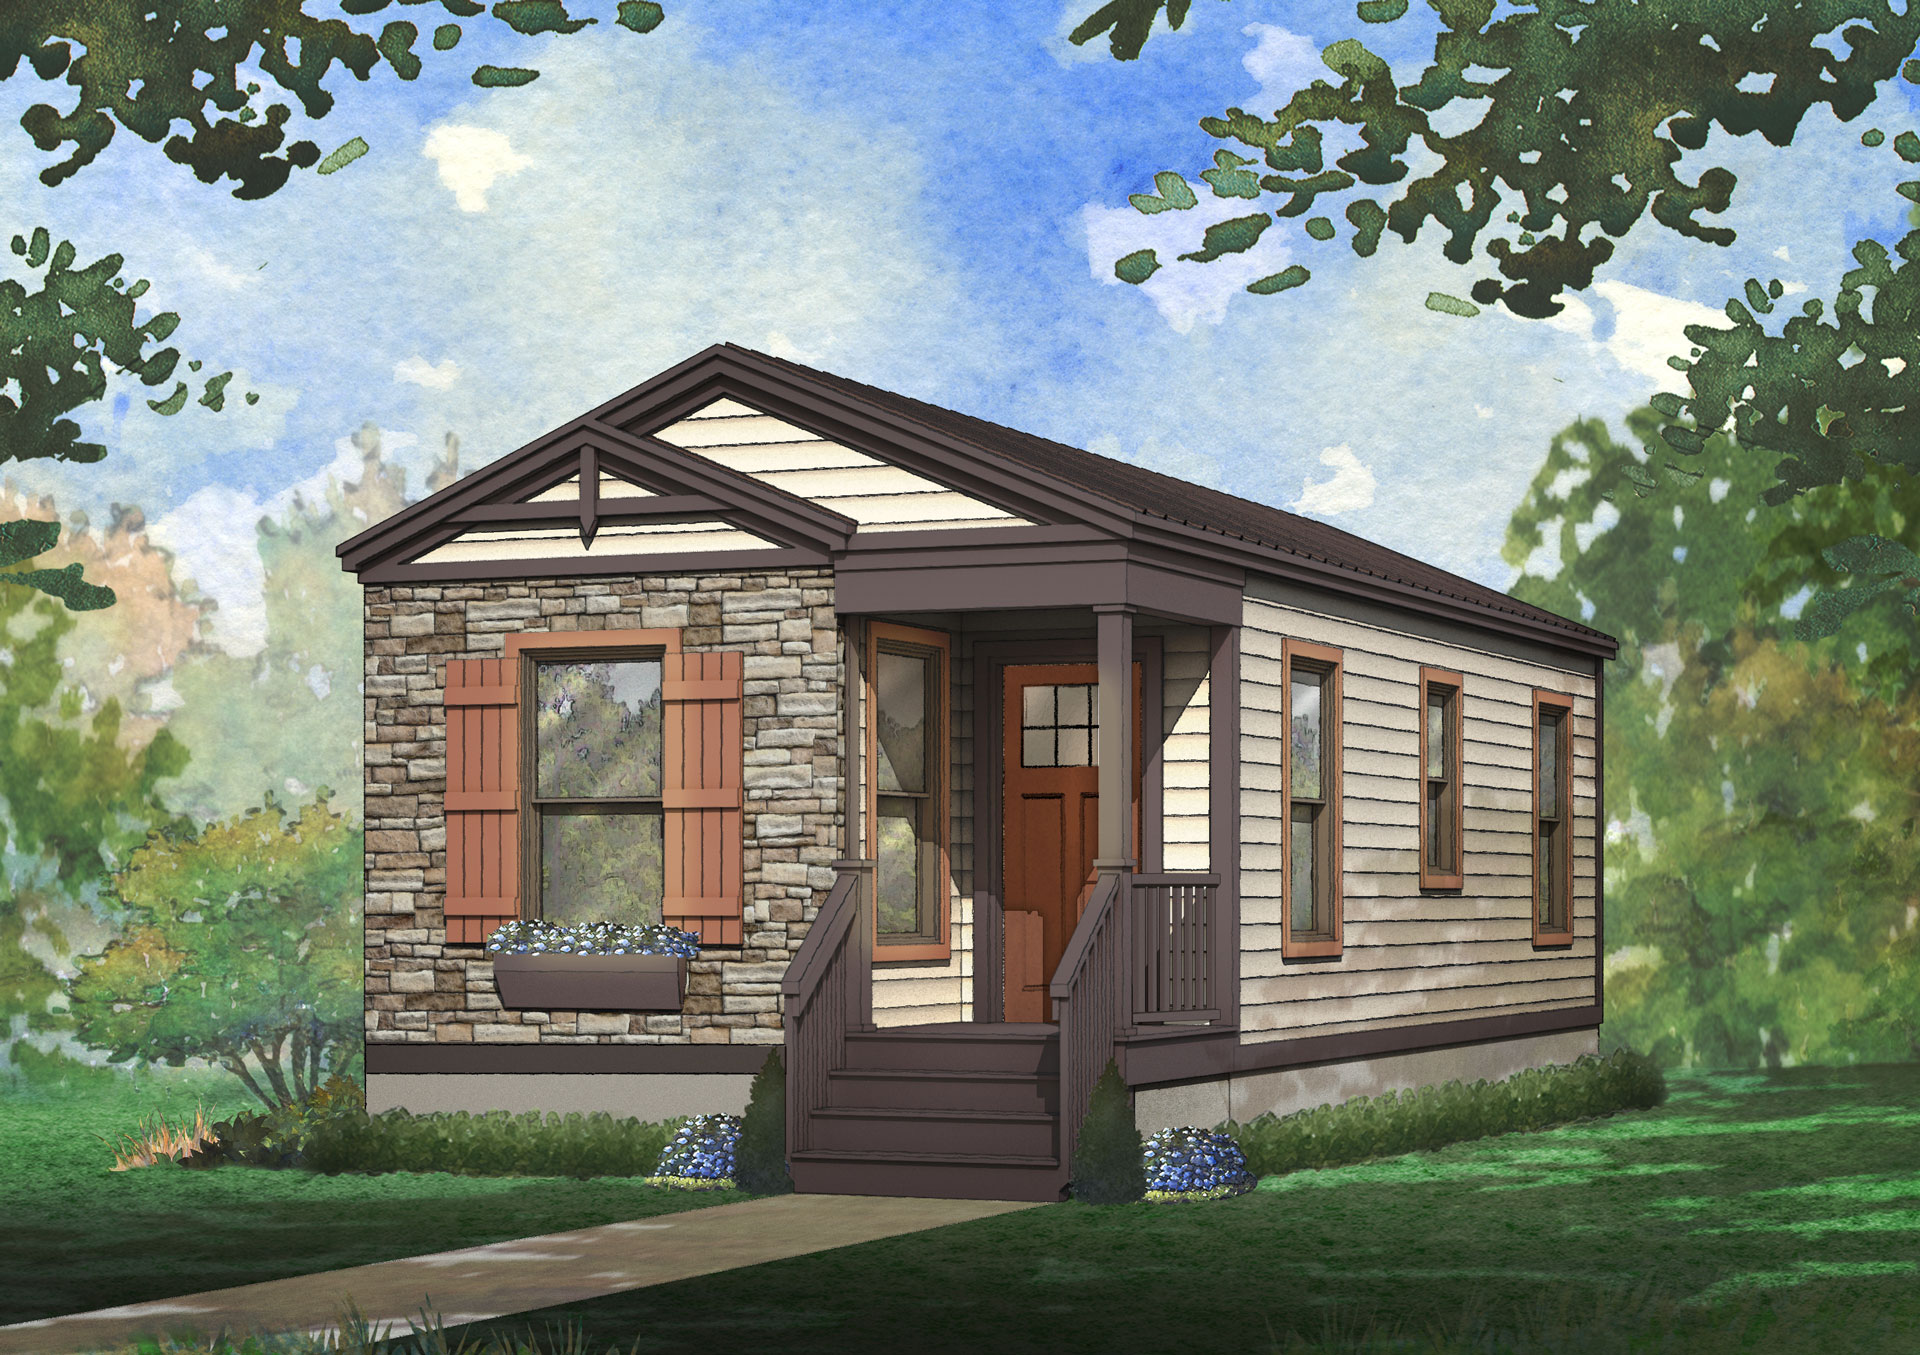 thistle modular home rendering